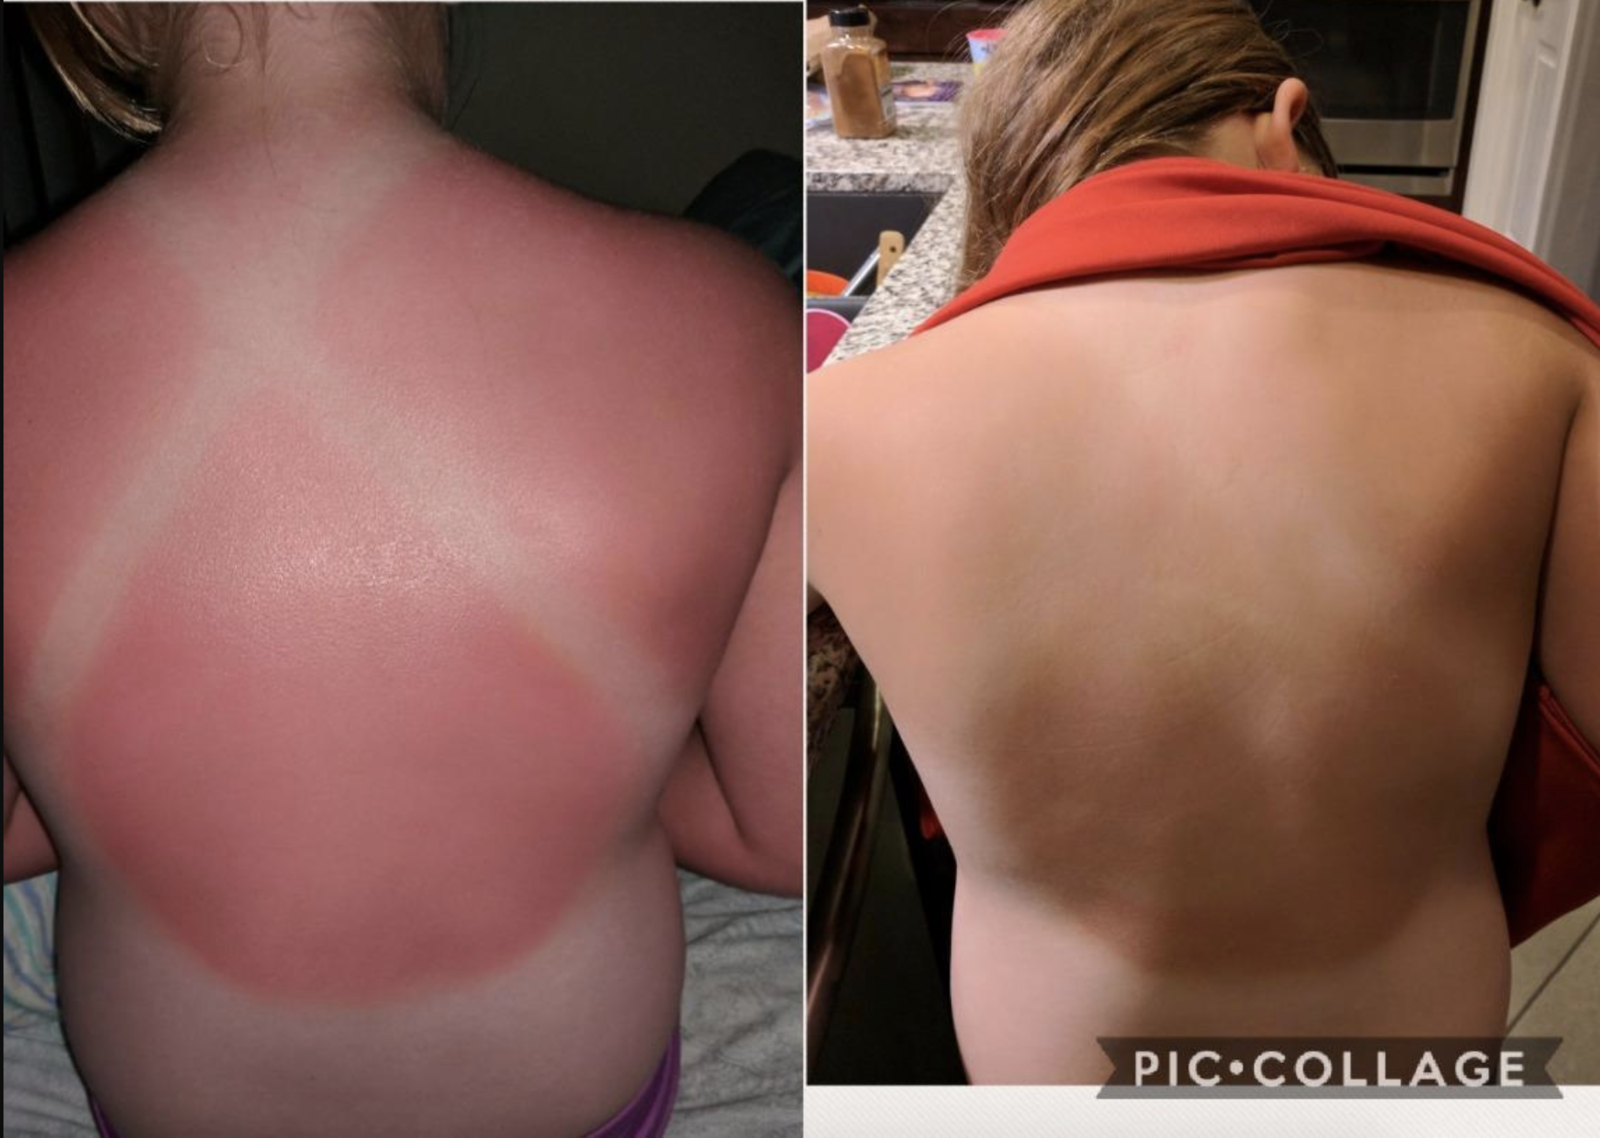 A reviewer's back on the left very sunburnt, and on the right almost completely faded